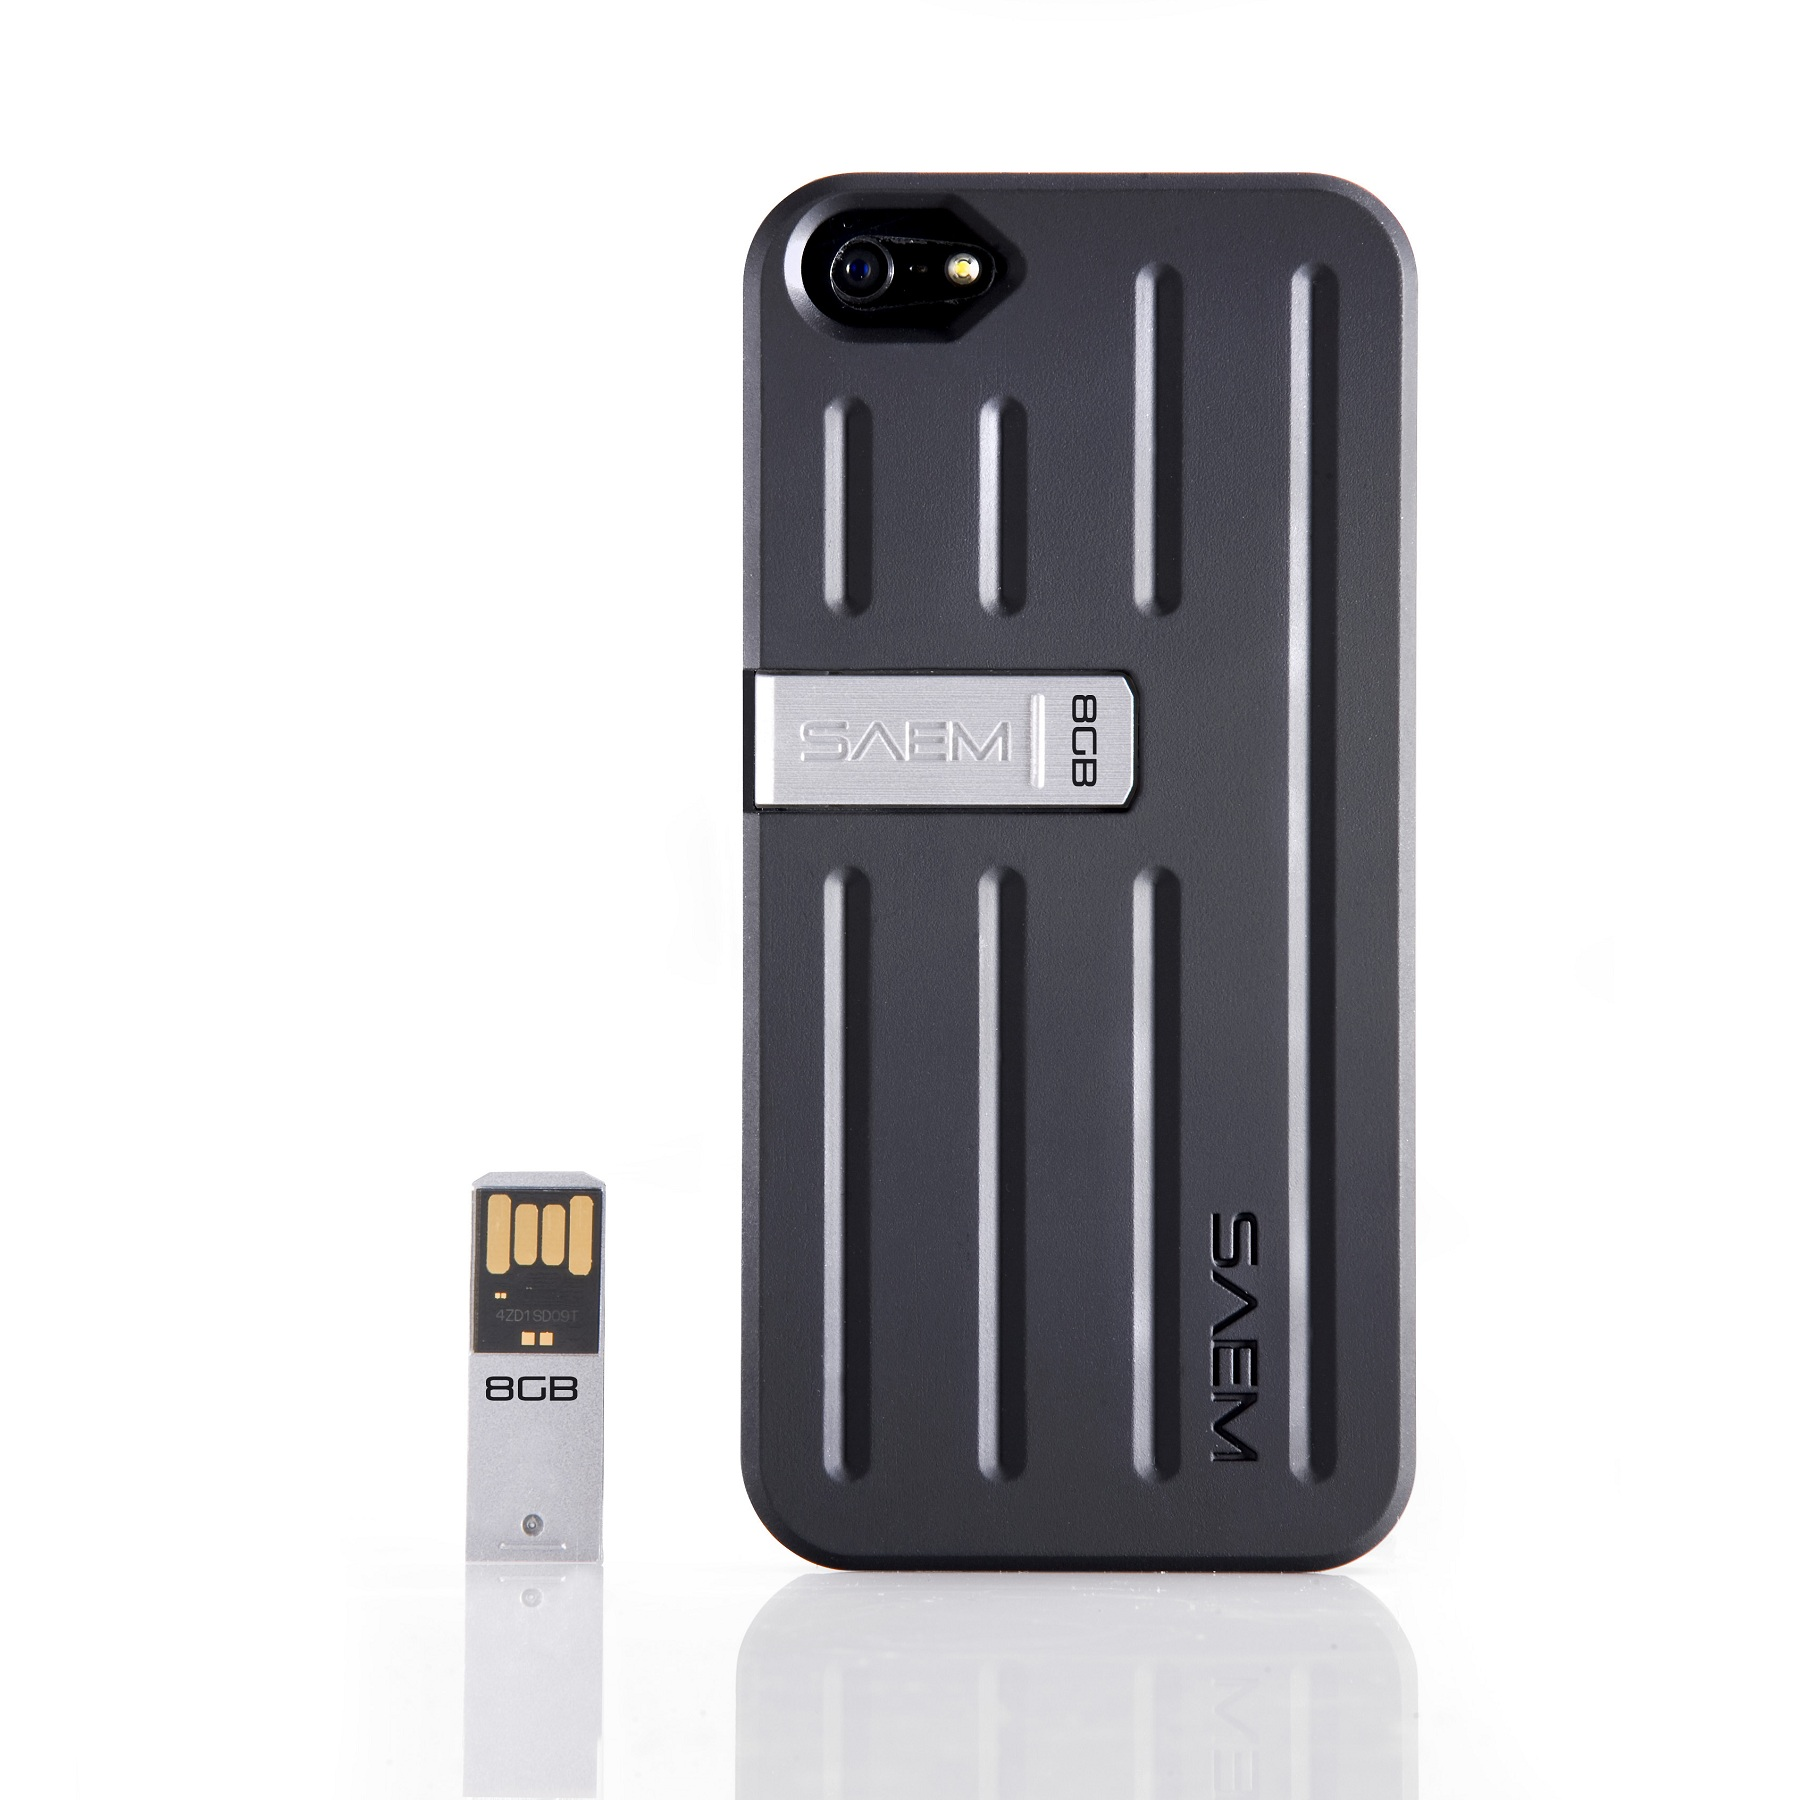 iphone 4 memory veho saem s7 iphone 4 4s 5 5s with an integrated 8gb 10868